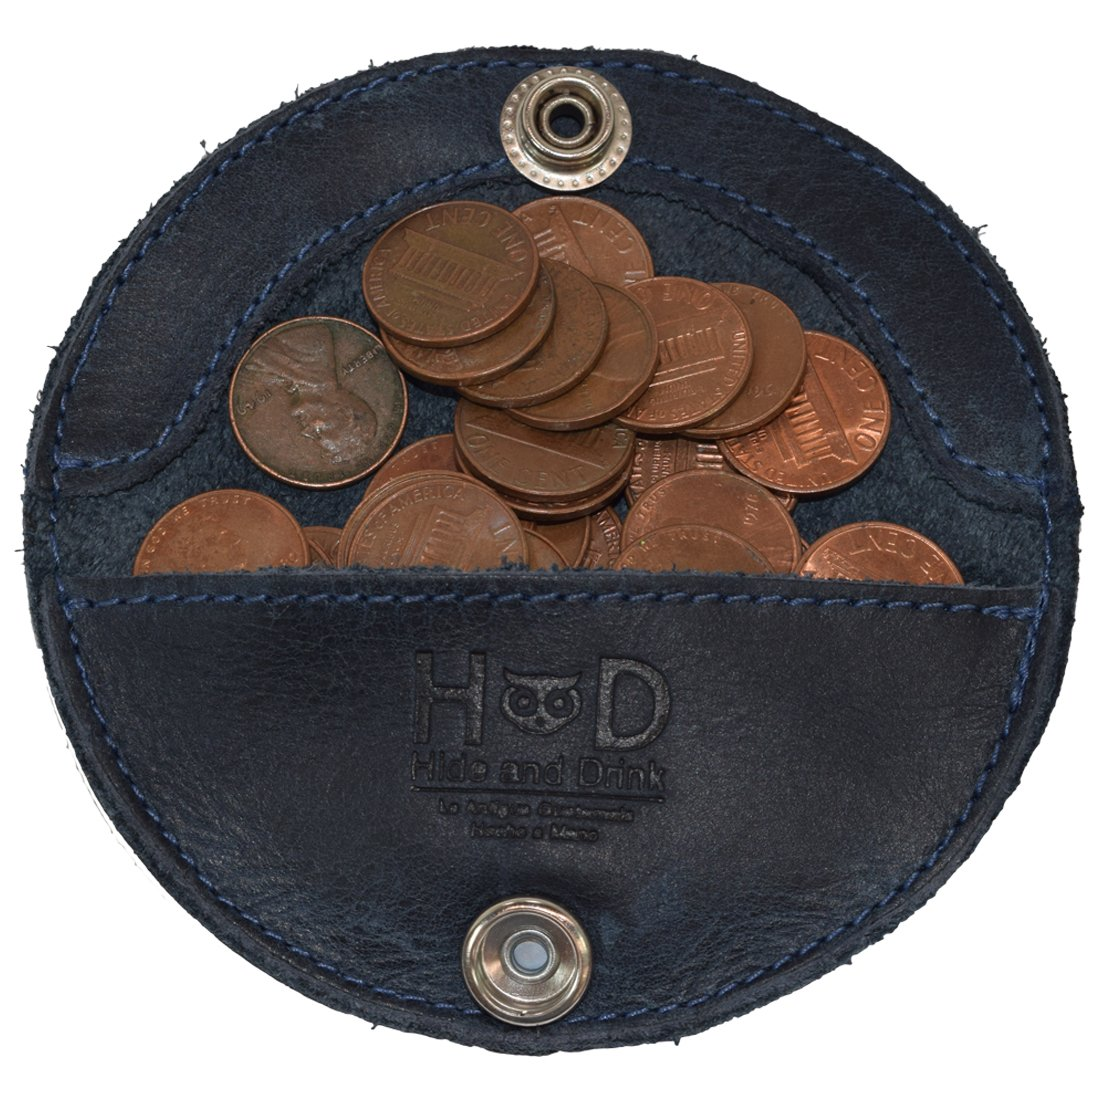 Rustic Leather Moon Pocket Coin Case Handmade by Hide & Drink :: Slate Blue